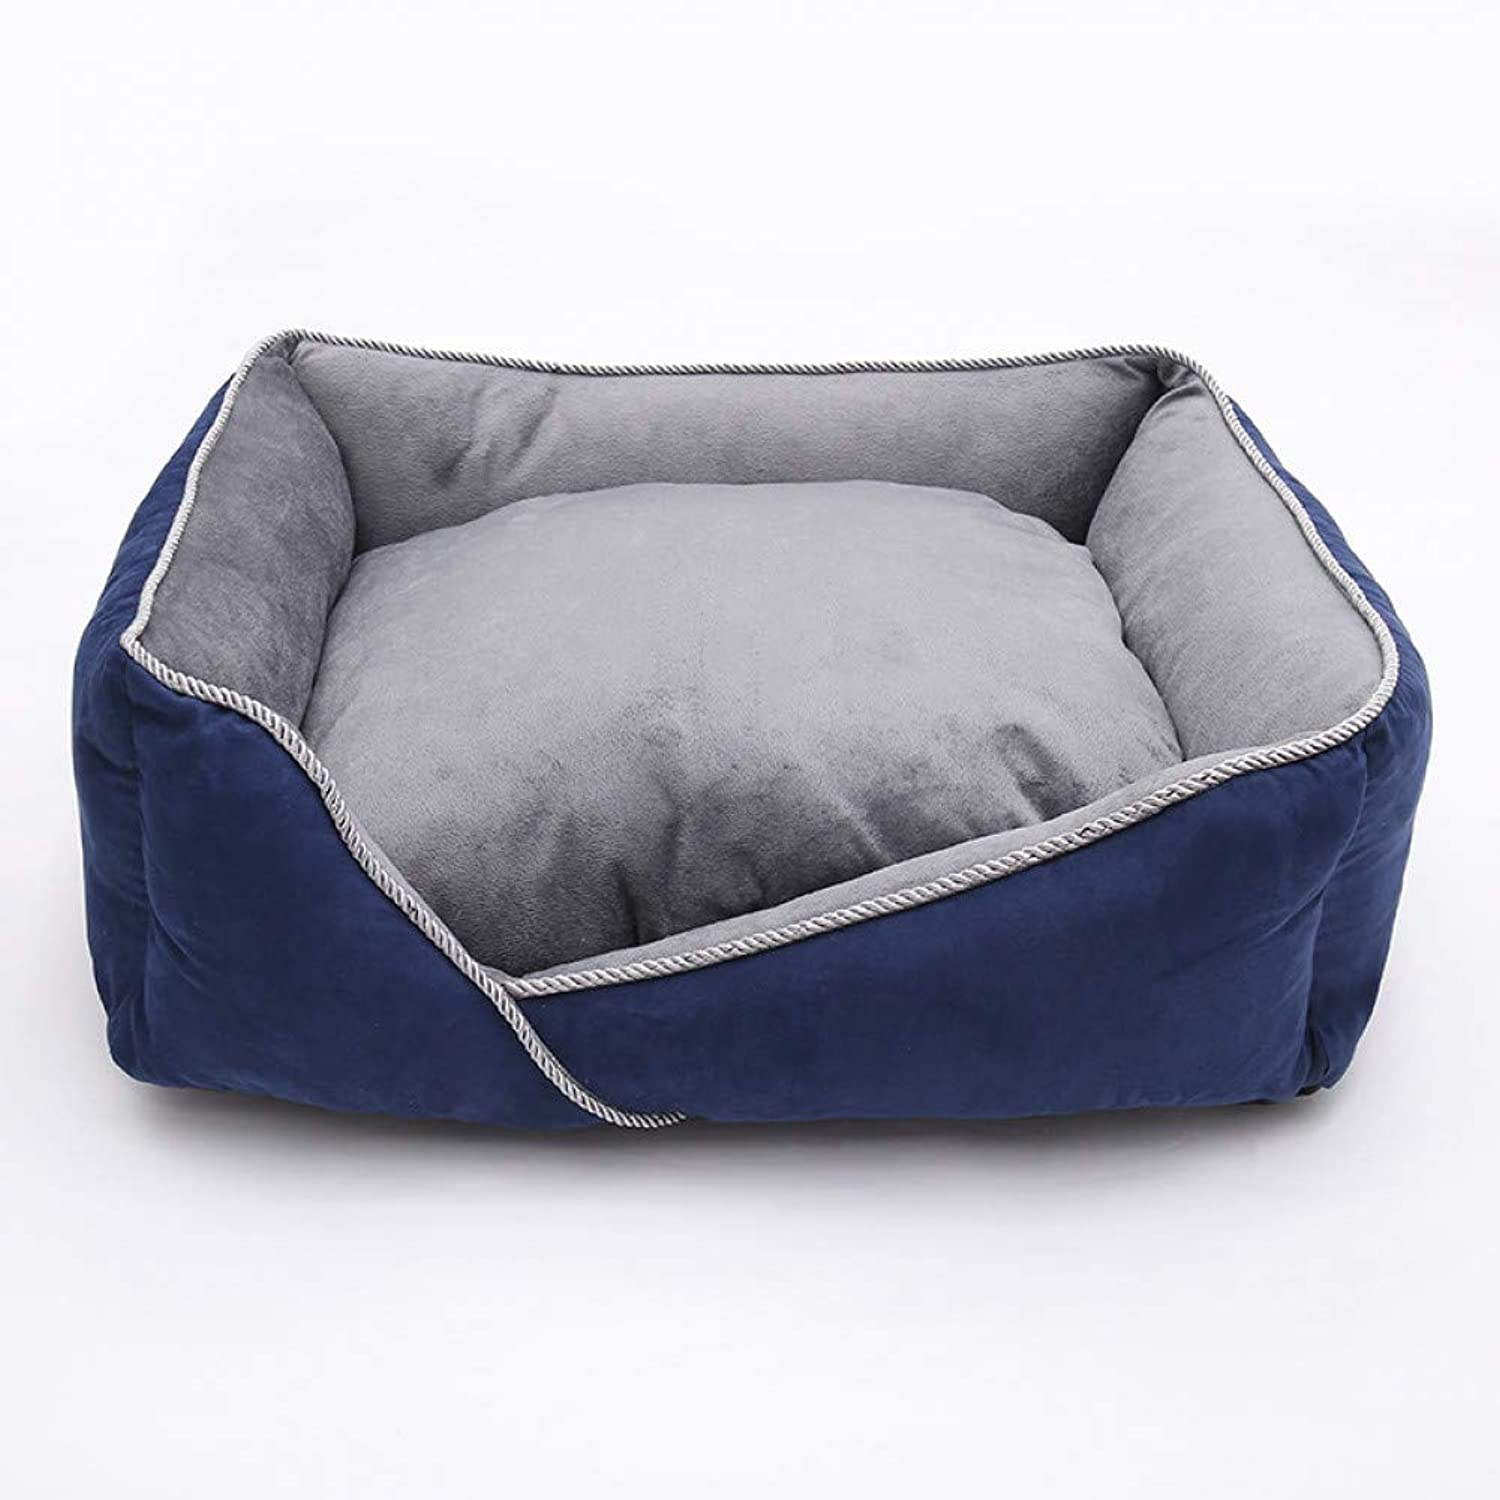 Dog Beds Warm Sofas Removable Cushion Soft Cotton Fleece Dog Bed Kennel Cage Labrador Teddy Beds